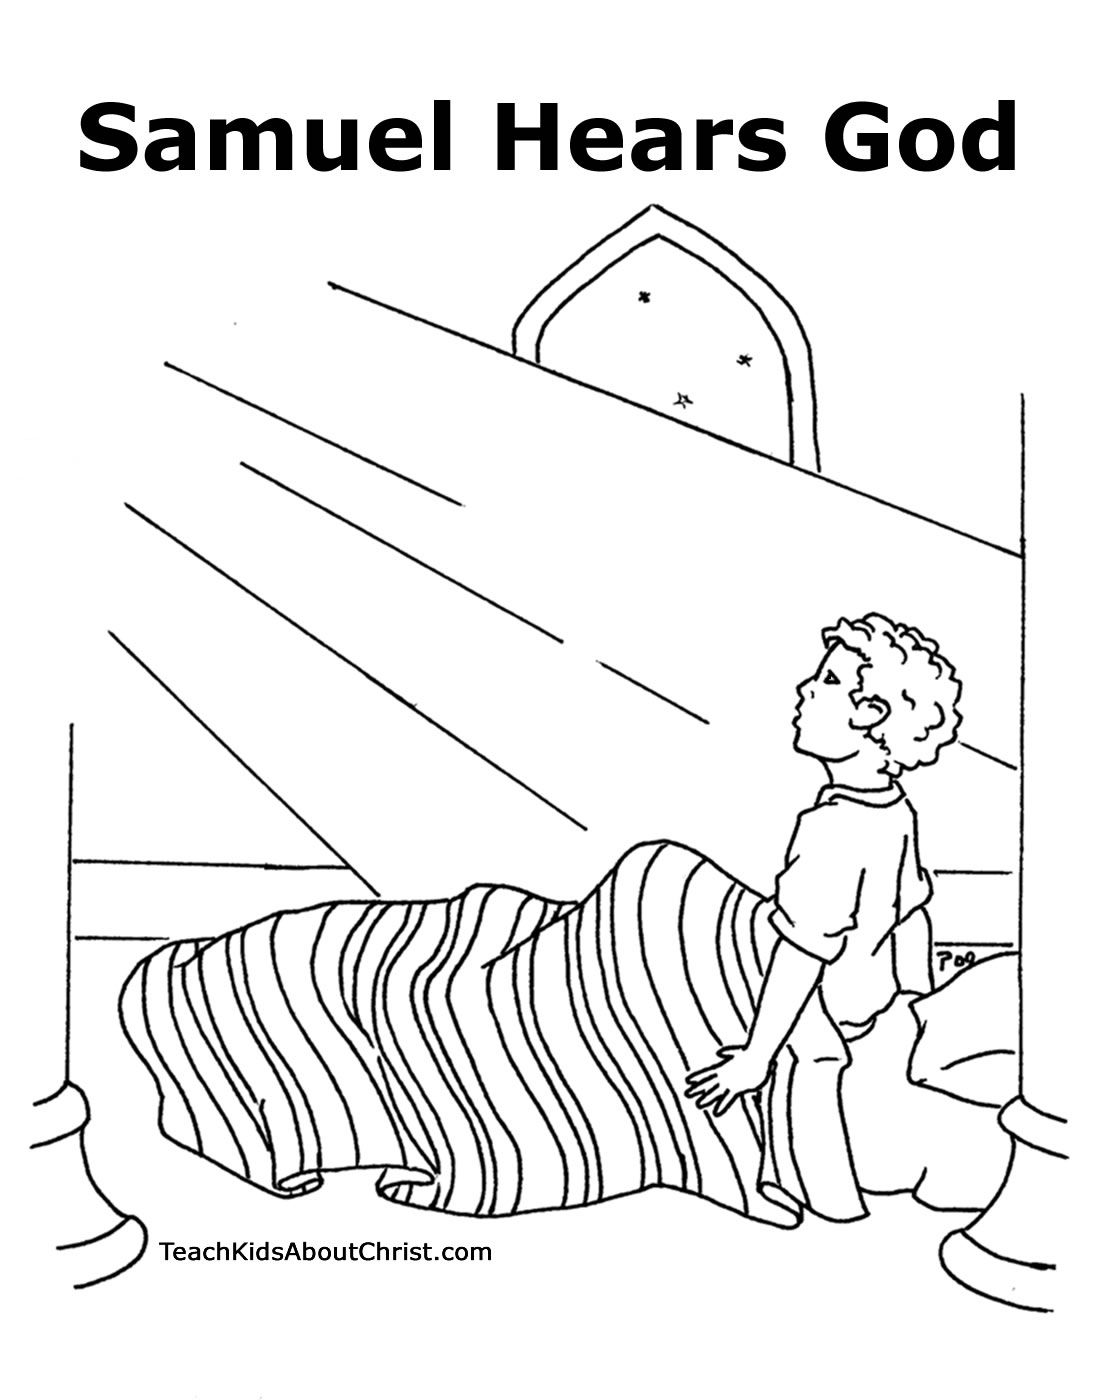 Free coloring pages for bible stories - Http Teachkidsaboutchrist Com Wp Content Uploads 2010 01 Samuel Hears God Coloring Page Jpg Bible Pages To Color Pinterest Sunday School Bible And